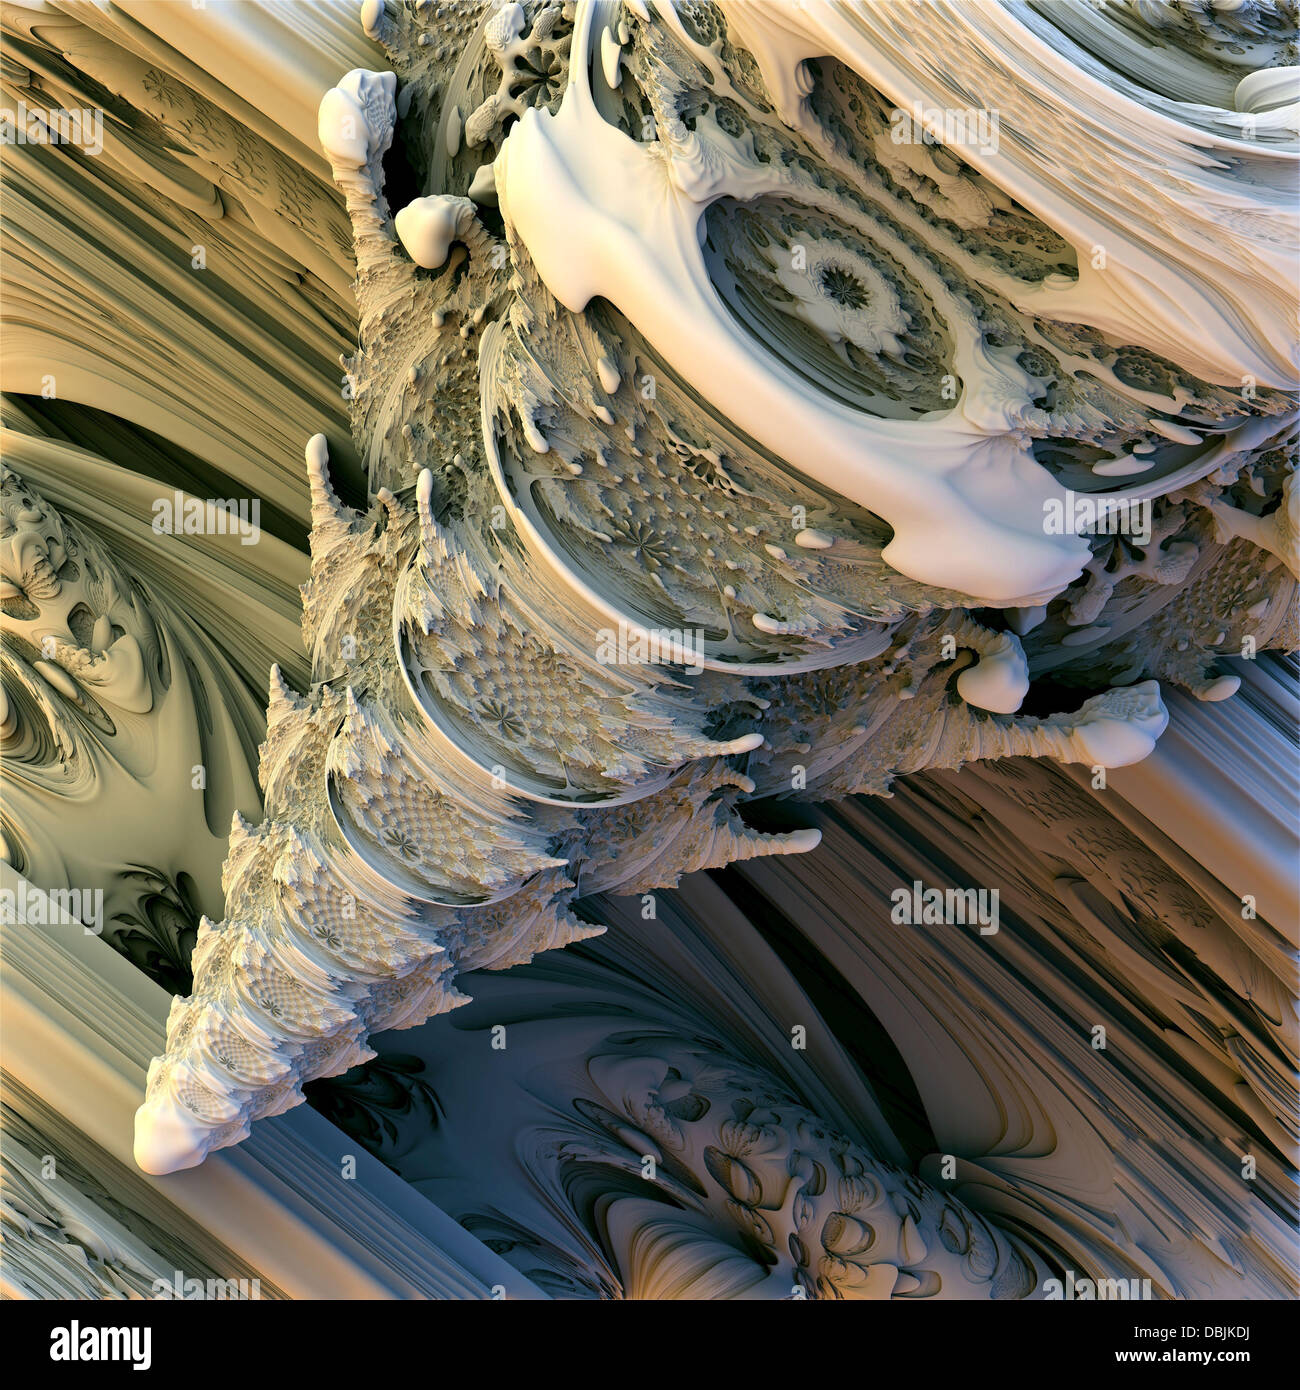 3-D MANDELBULB WORLD BOUGHT TO LIFE BY MATHS GEEKS  Photo shows: Mandelbulb Spine  A collection of amazing 3 dimensional - Stock Image